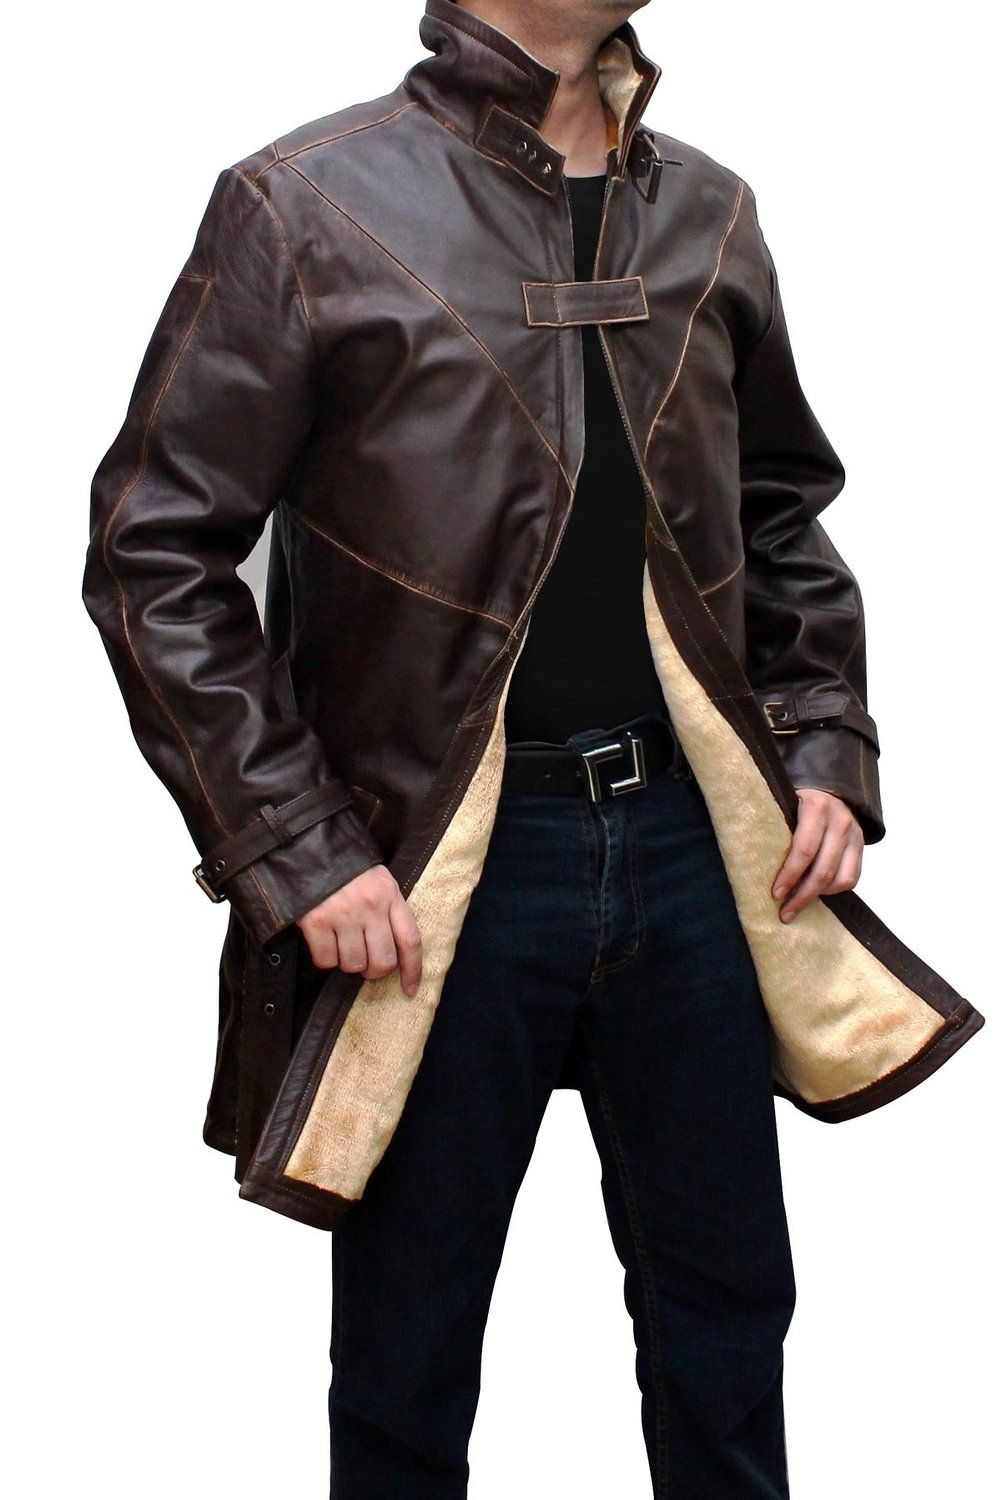 WD Leather Trench Coat Mens Brown Distressed Jacket at